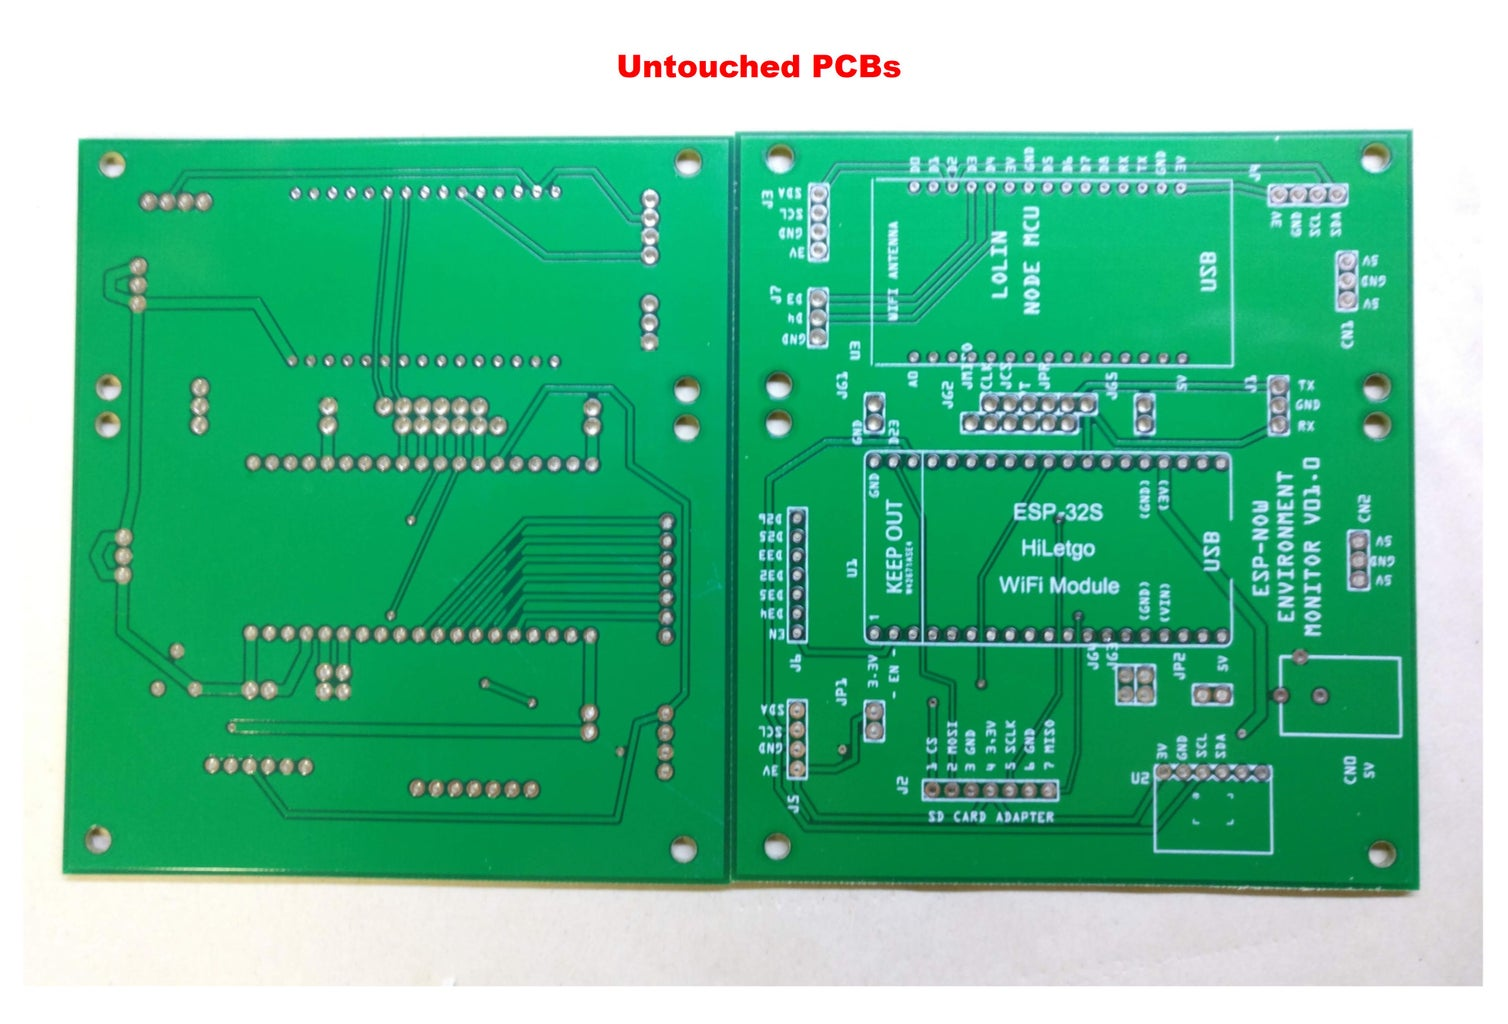 The PCBs